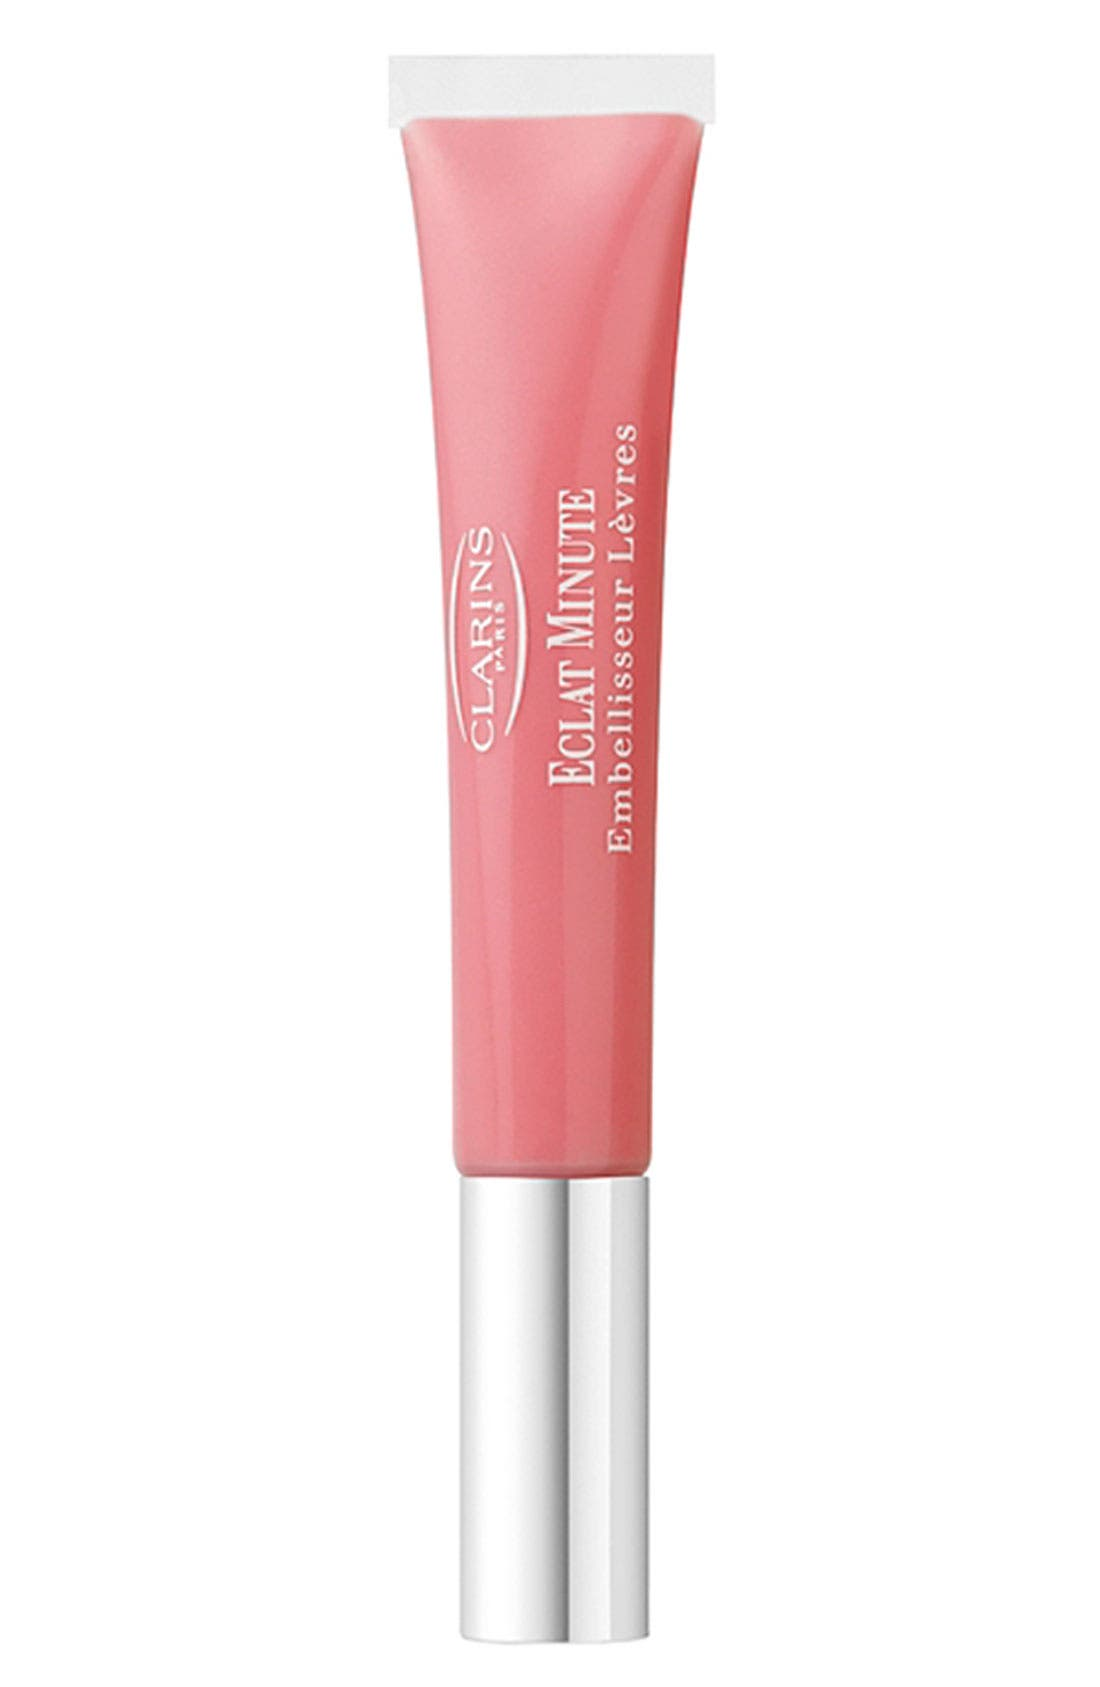 'Instant Light' Natural Lip Perfector,                         Main,                         color, 001